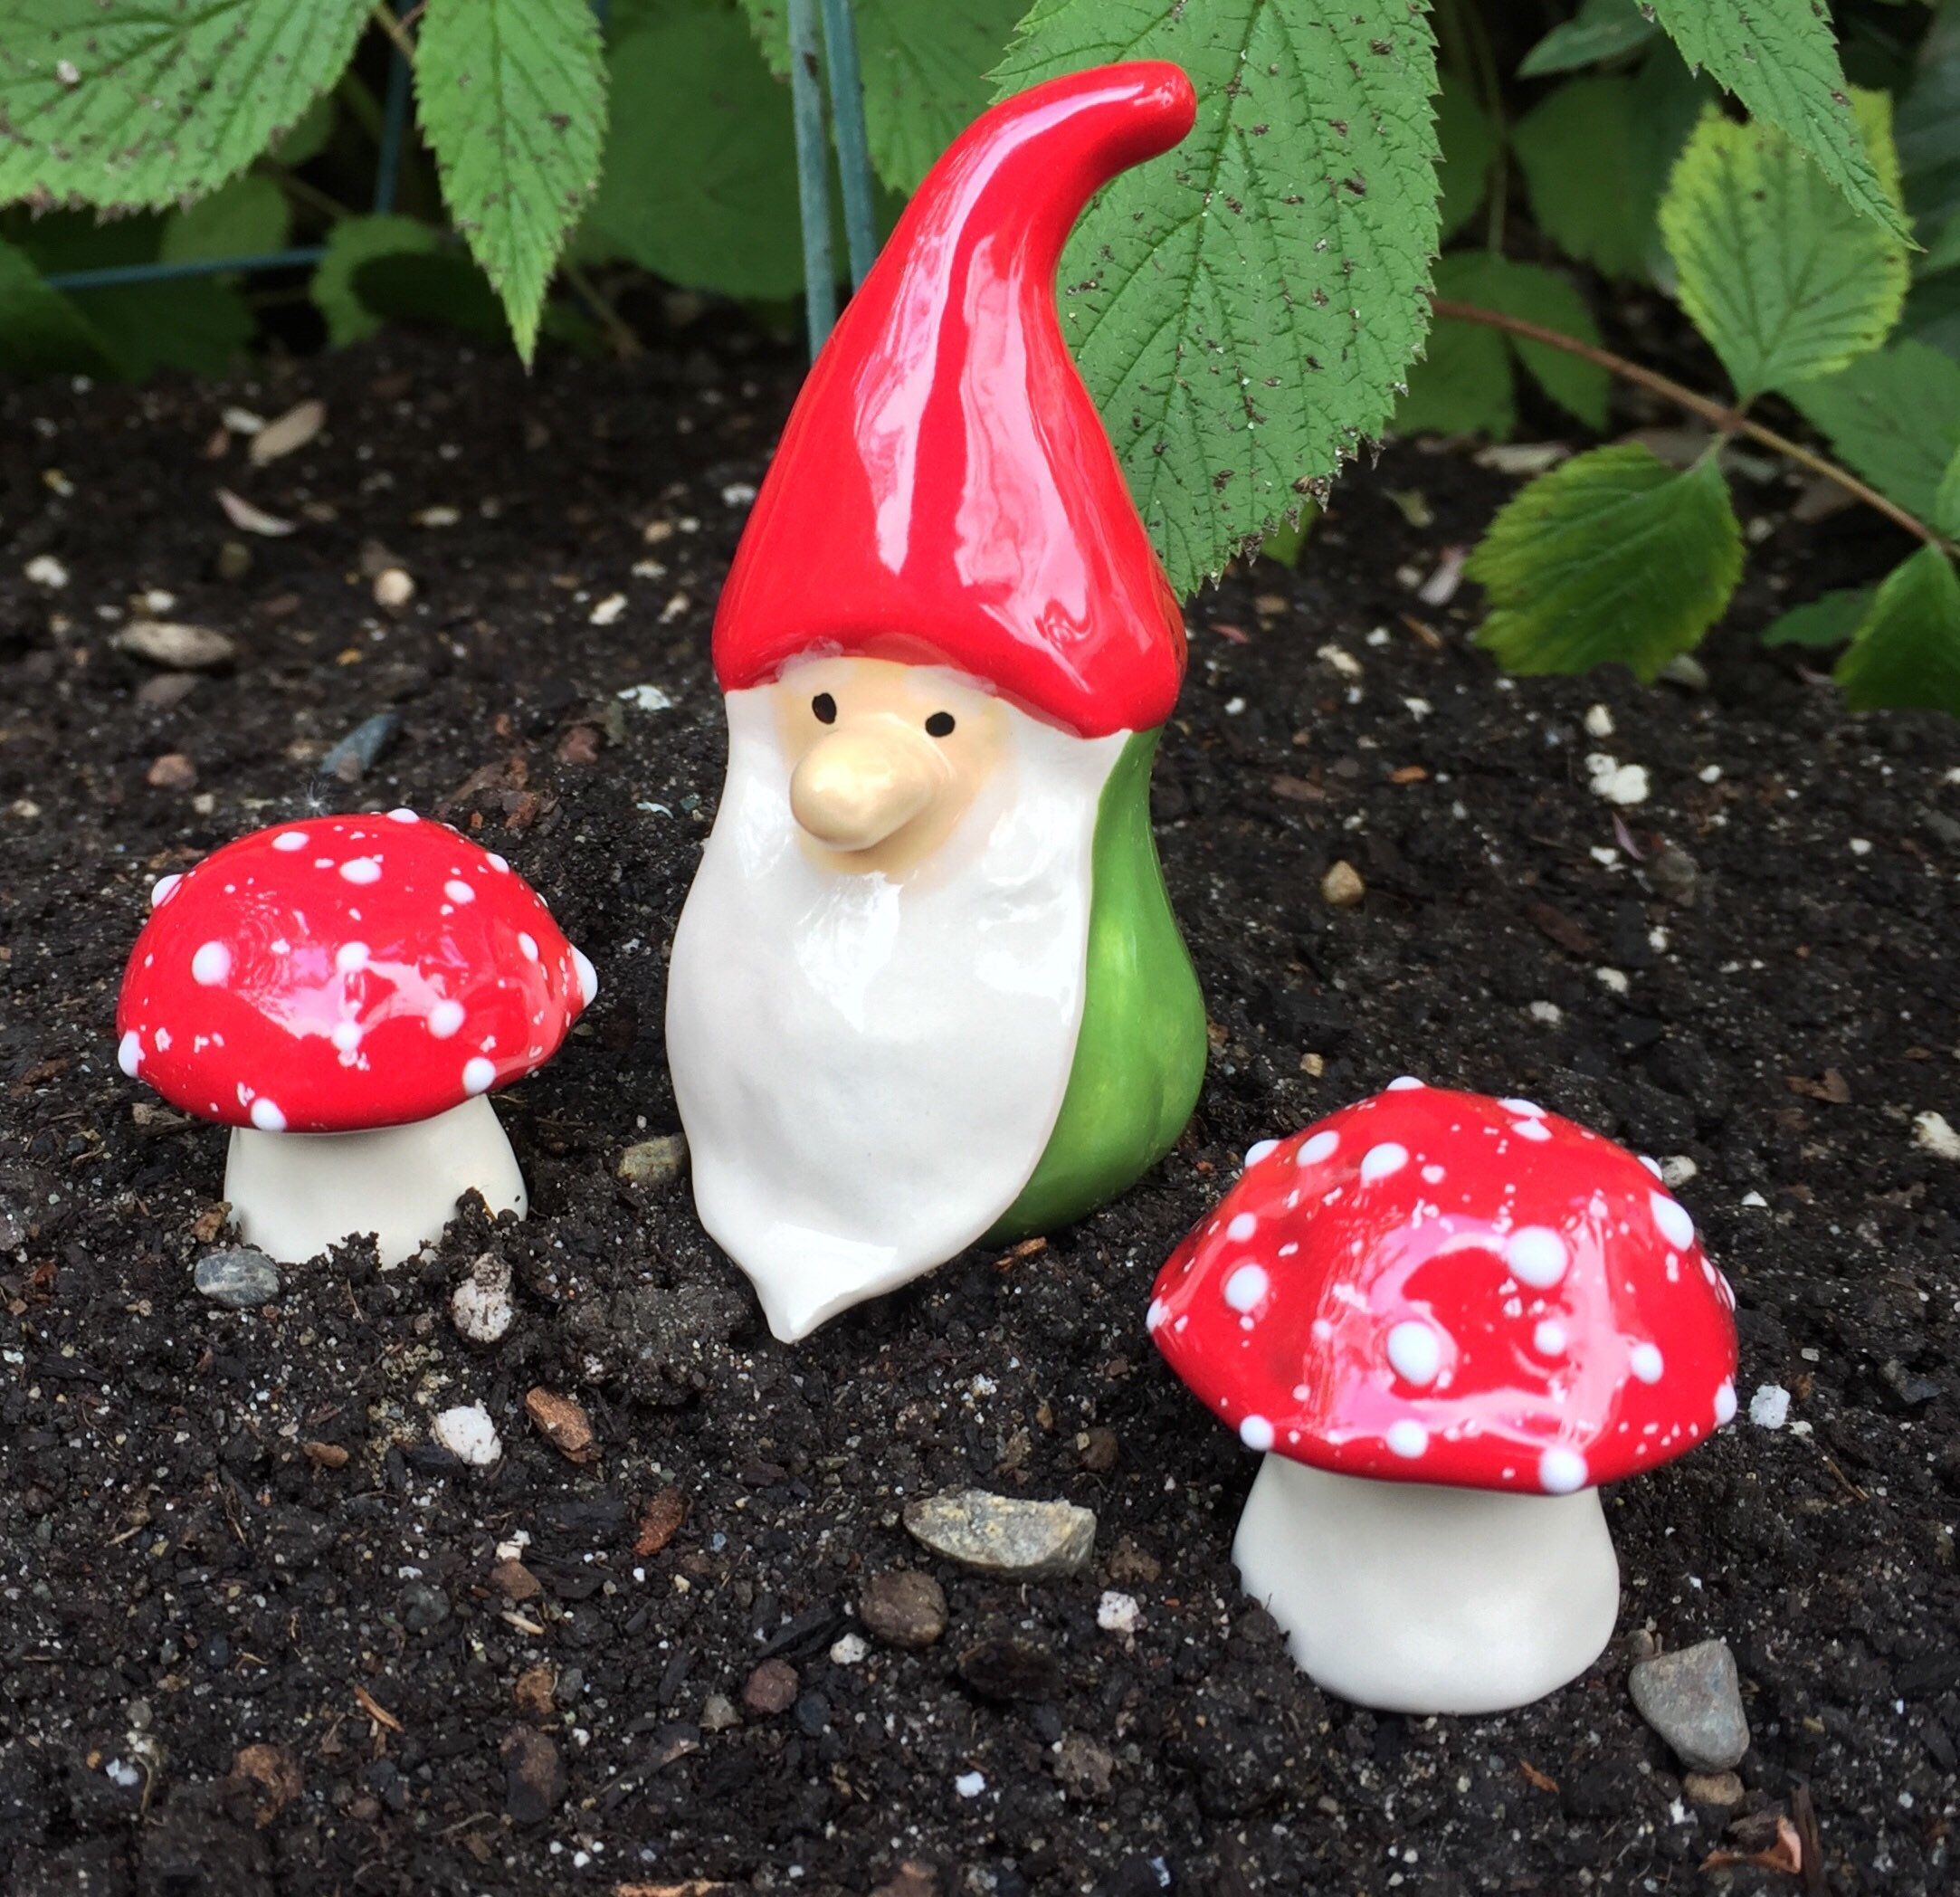 34f9016d779067bb6a21659e93f4a6be - How To Get Rid Of Toadstools In Your Lawn